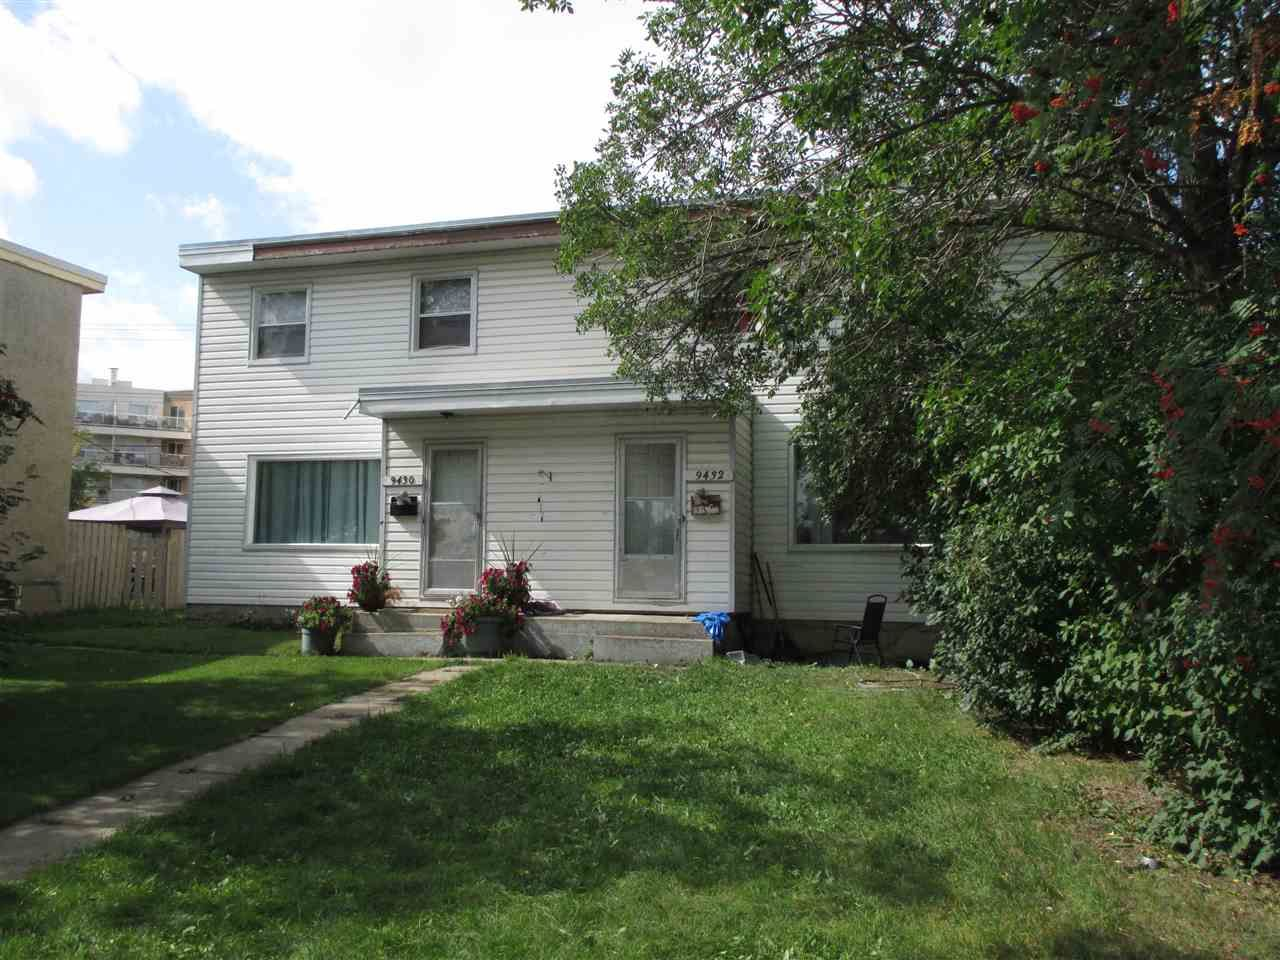 Main Photo: 9412-9420 83 Street in Edmonton: Zone 18 Land Commercial for sale : MLS®# E4243932